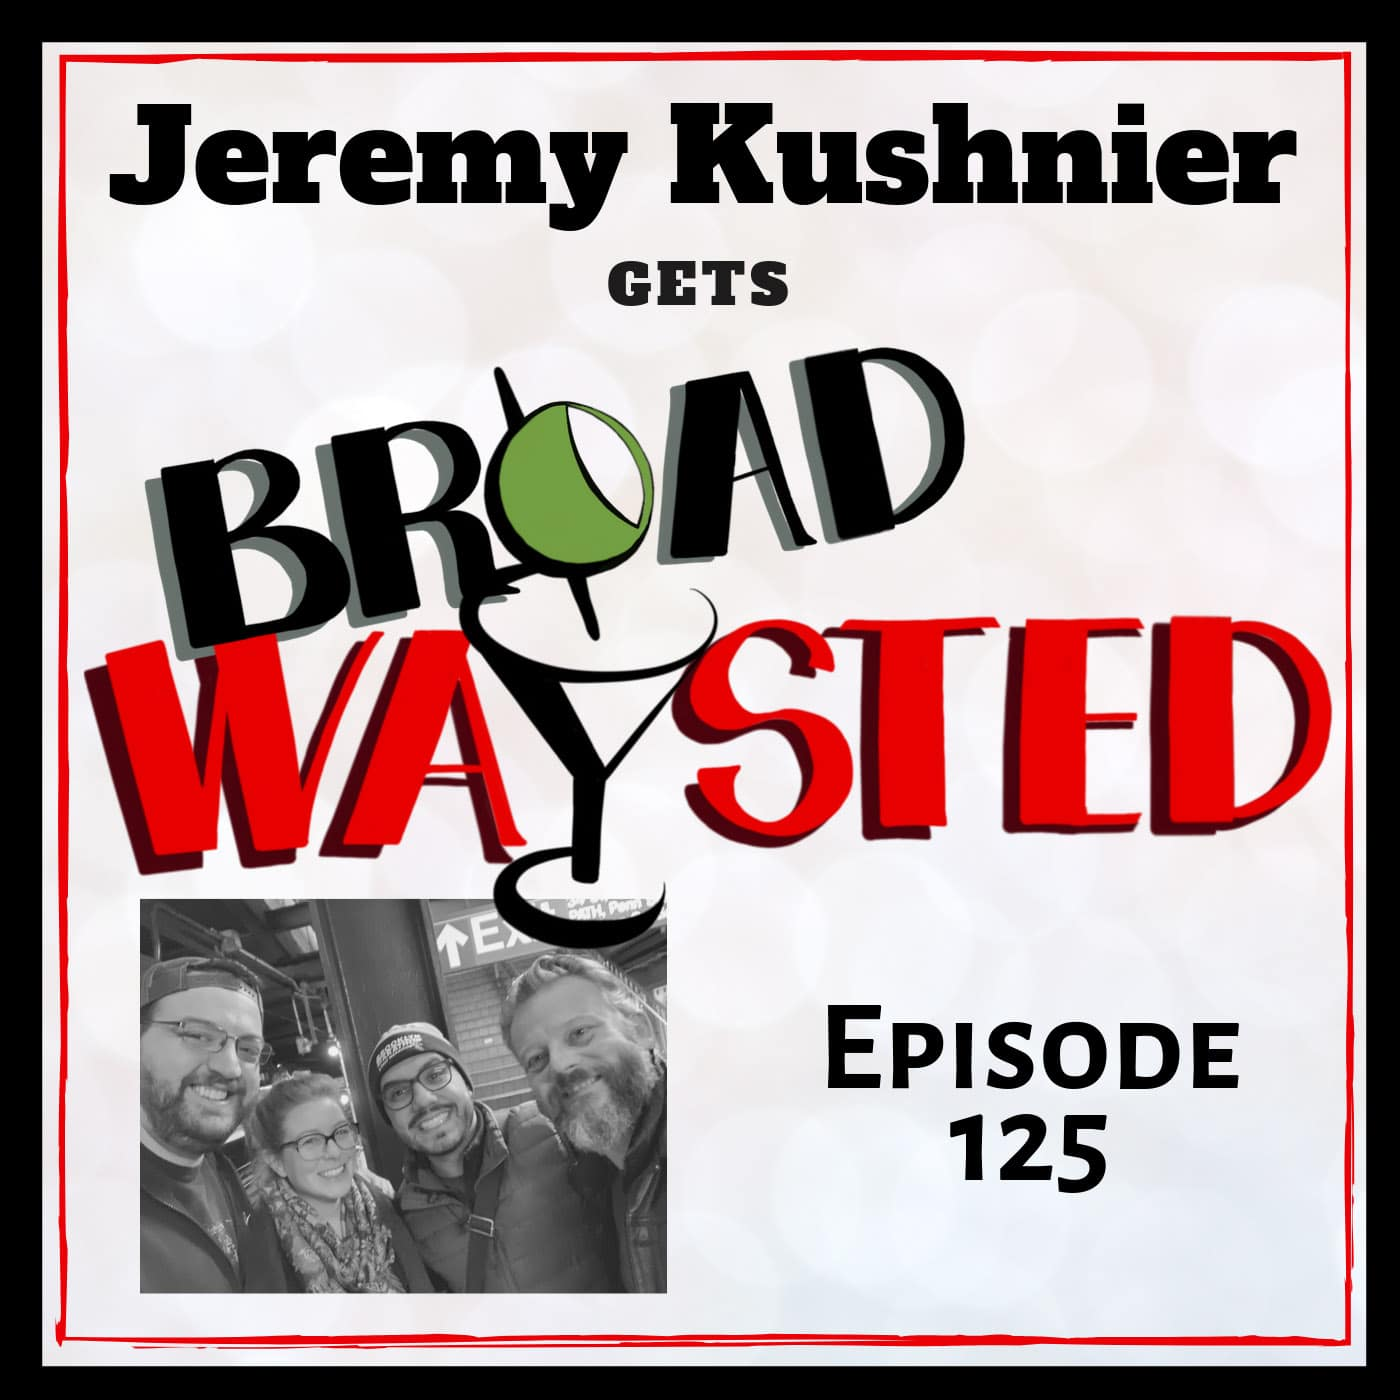 Broadwaysted Ep 125 Jeremy Kushnier